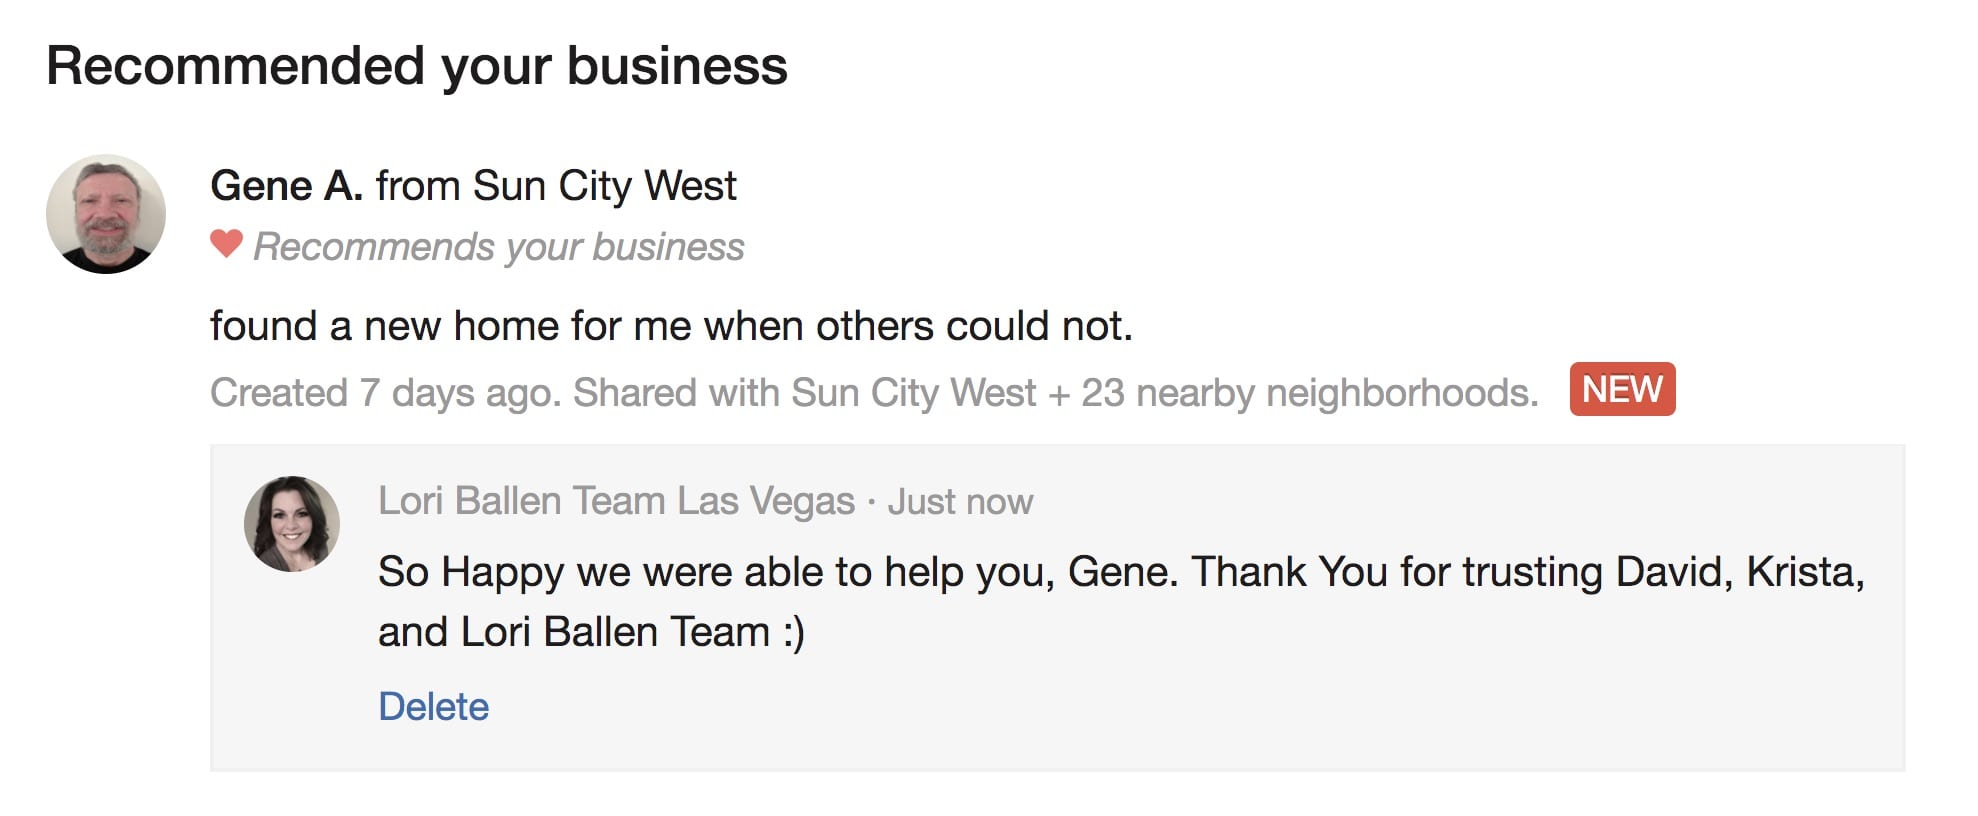 Actual example of a nextdoor recommendation where Gene from Sun City West recommends Lori Ballen Team in Las Vegas